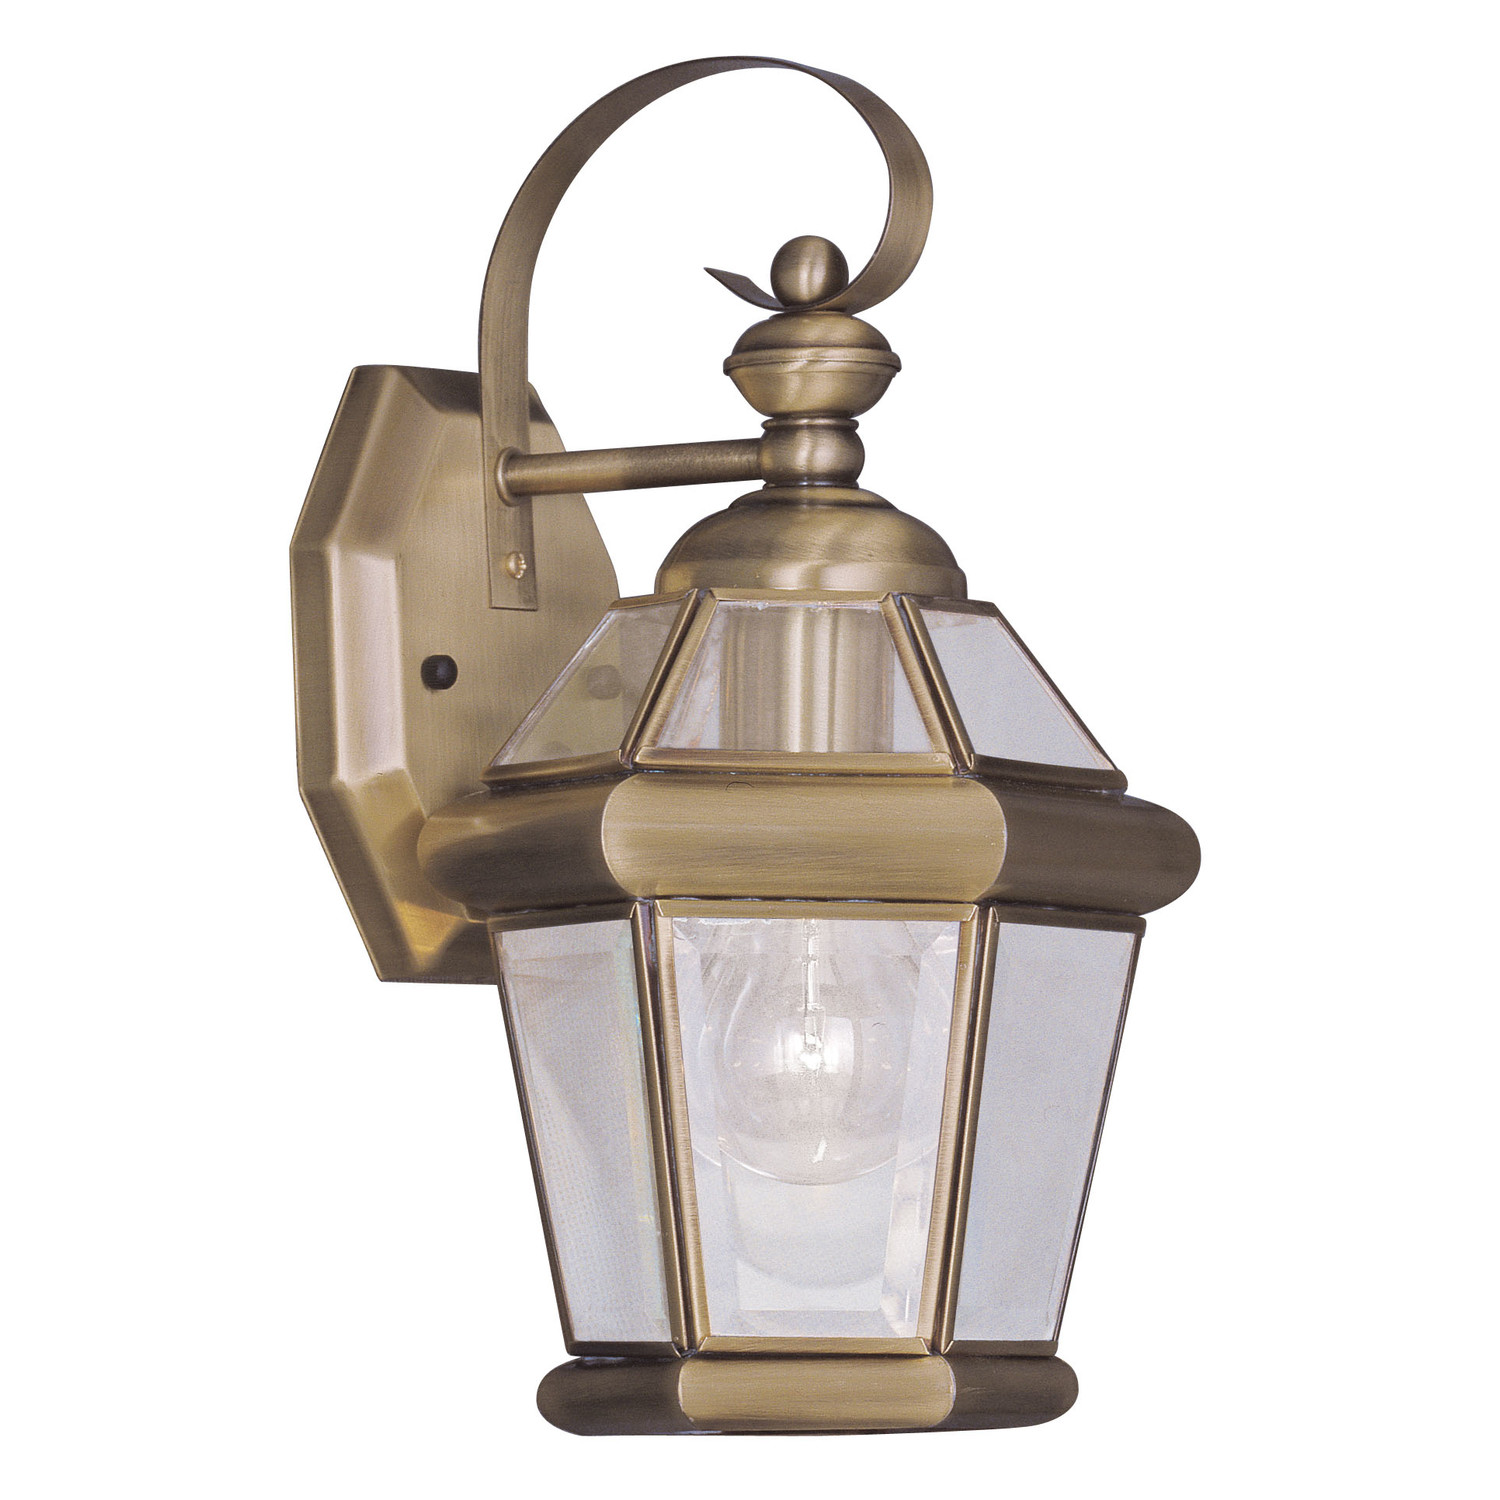 Wonderful Livex Lighting For Home Lighting Ideas: Beautiful Livex Lighting Georgetown Outdoor Wall Lantern For Outdoor Lighting Ideas